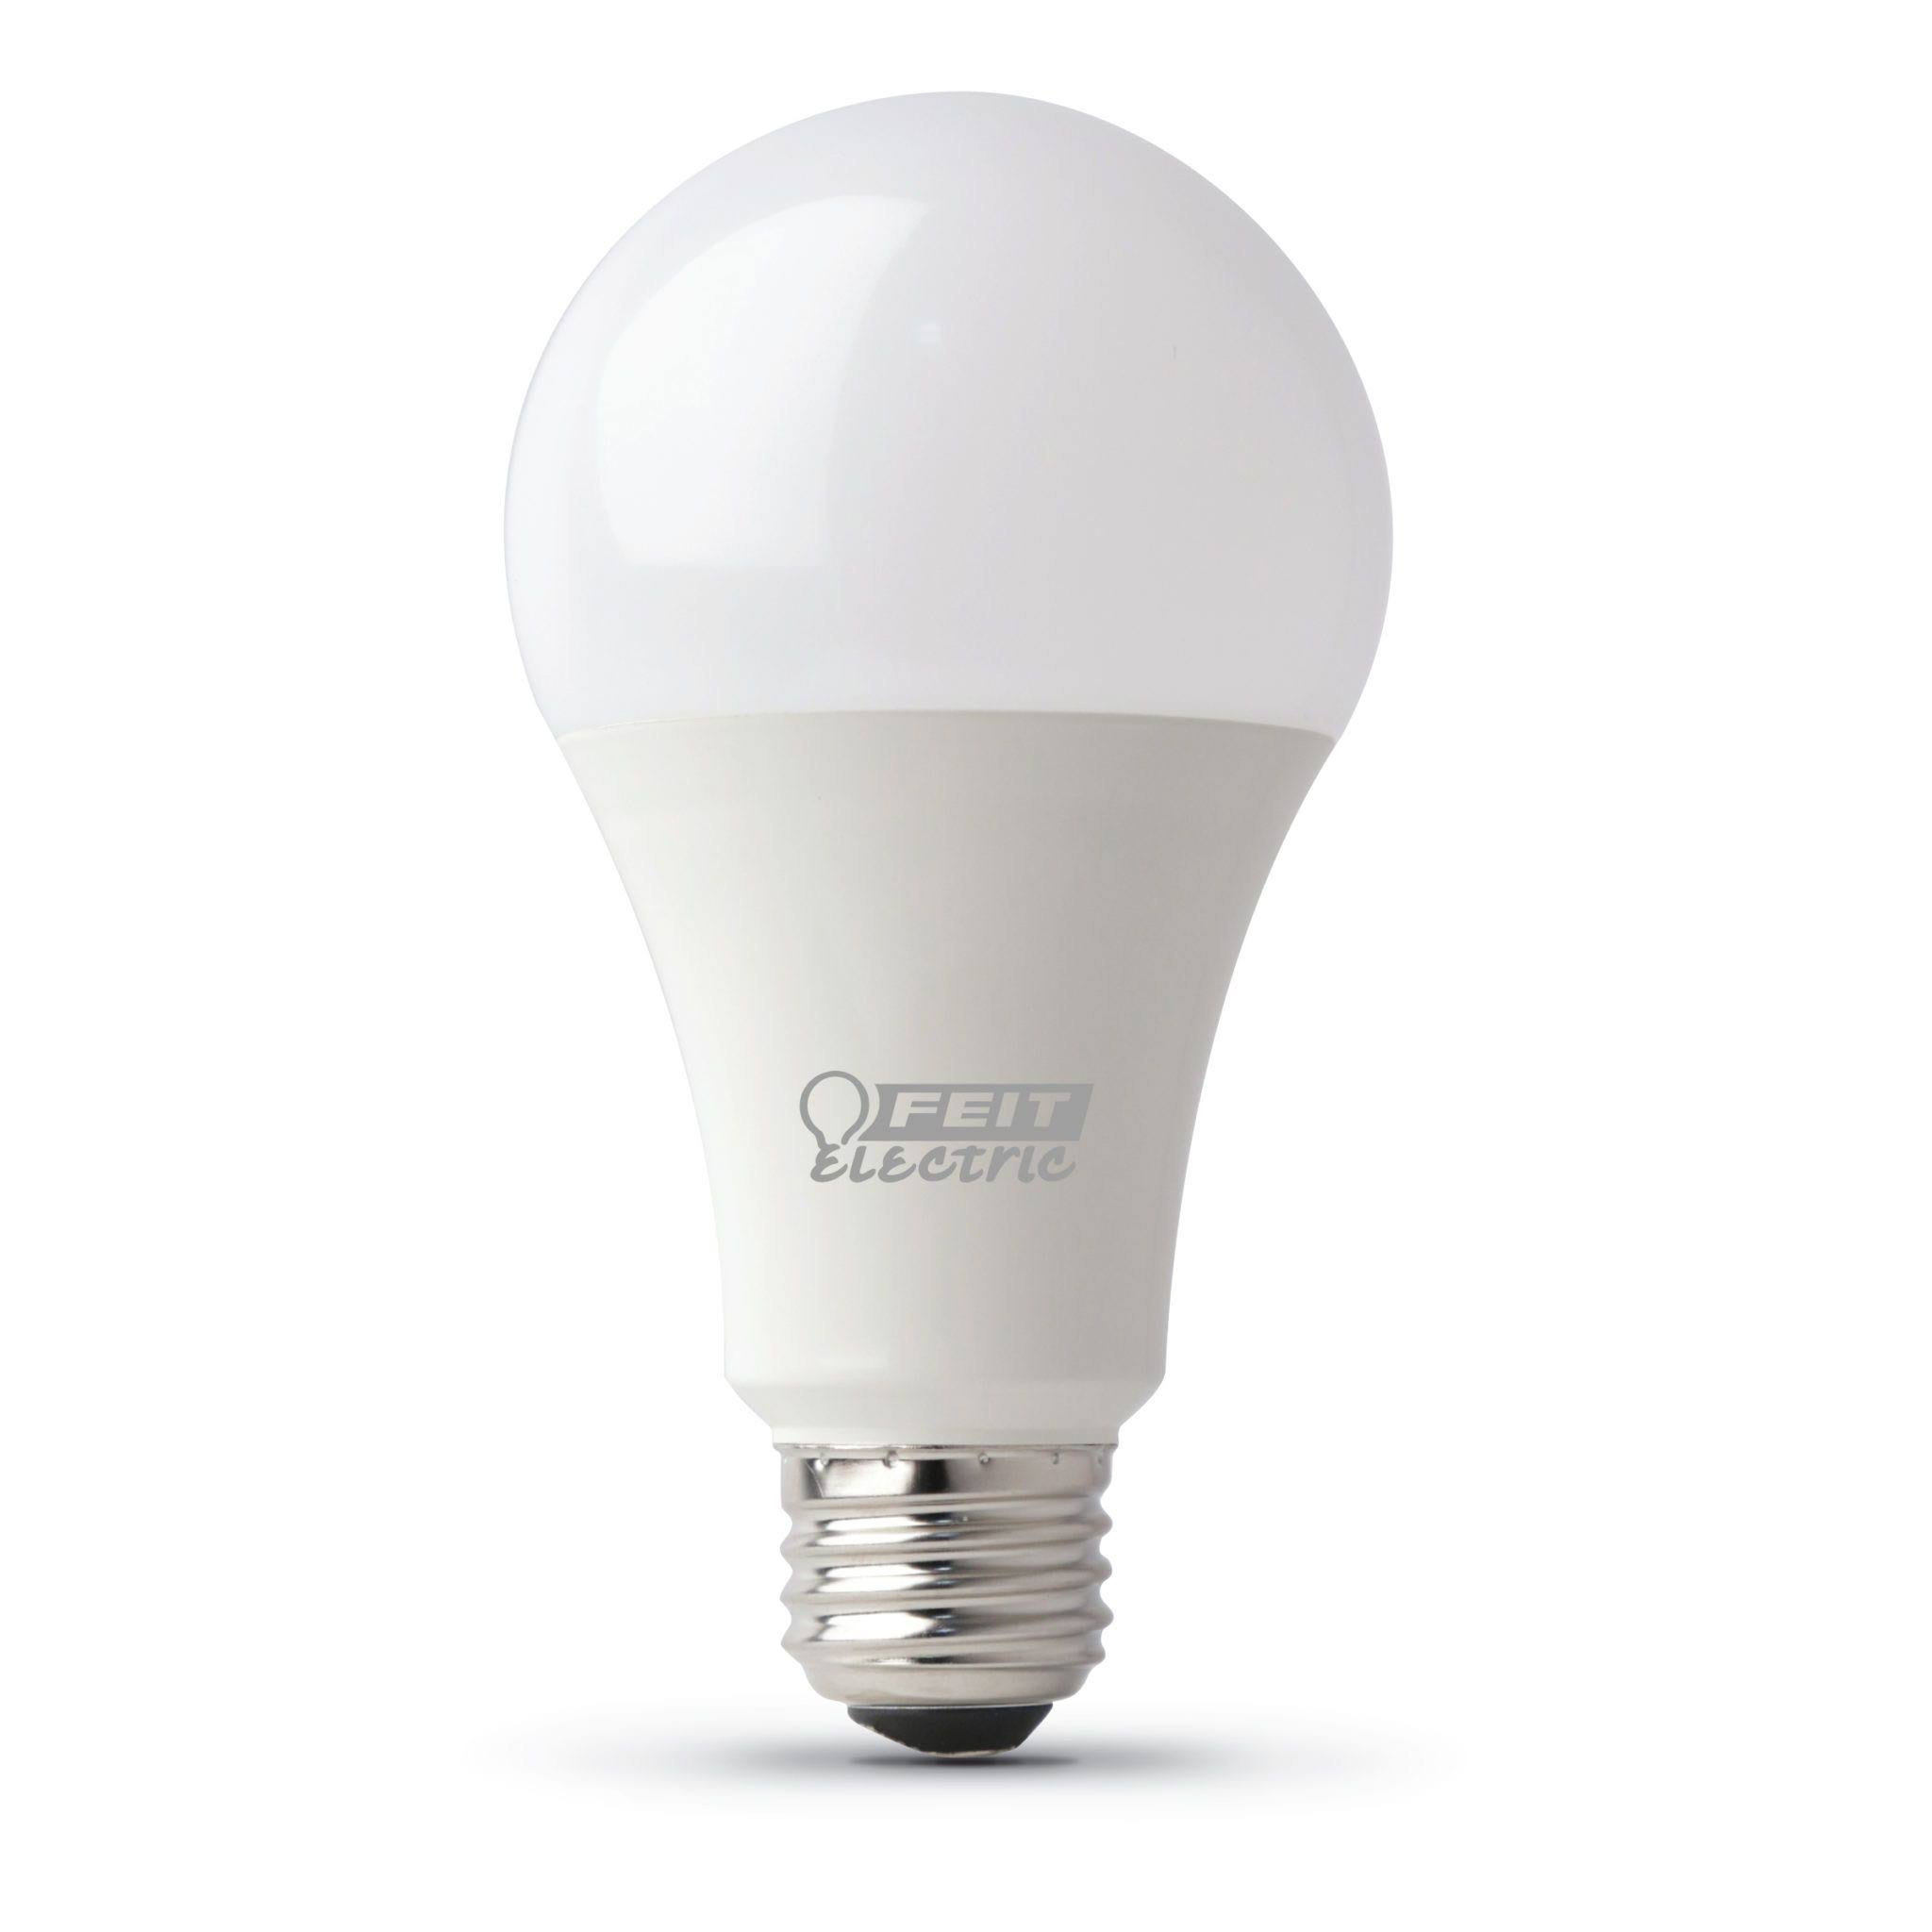 Feit Dimmable Led Bulb - 1600 Lumens